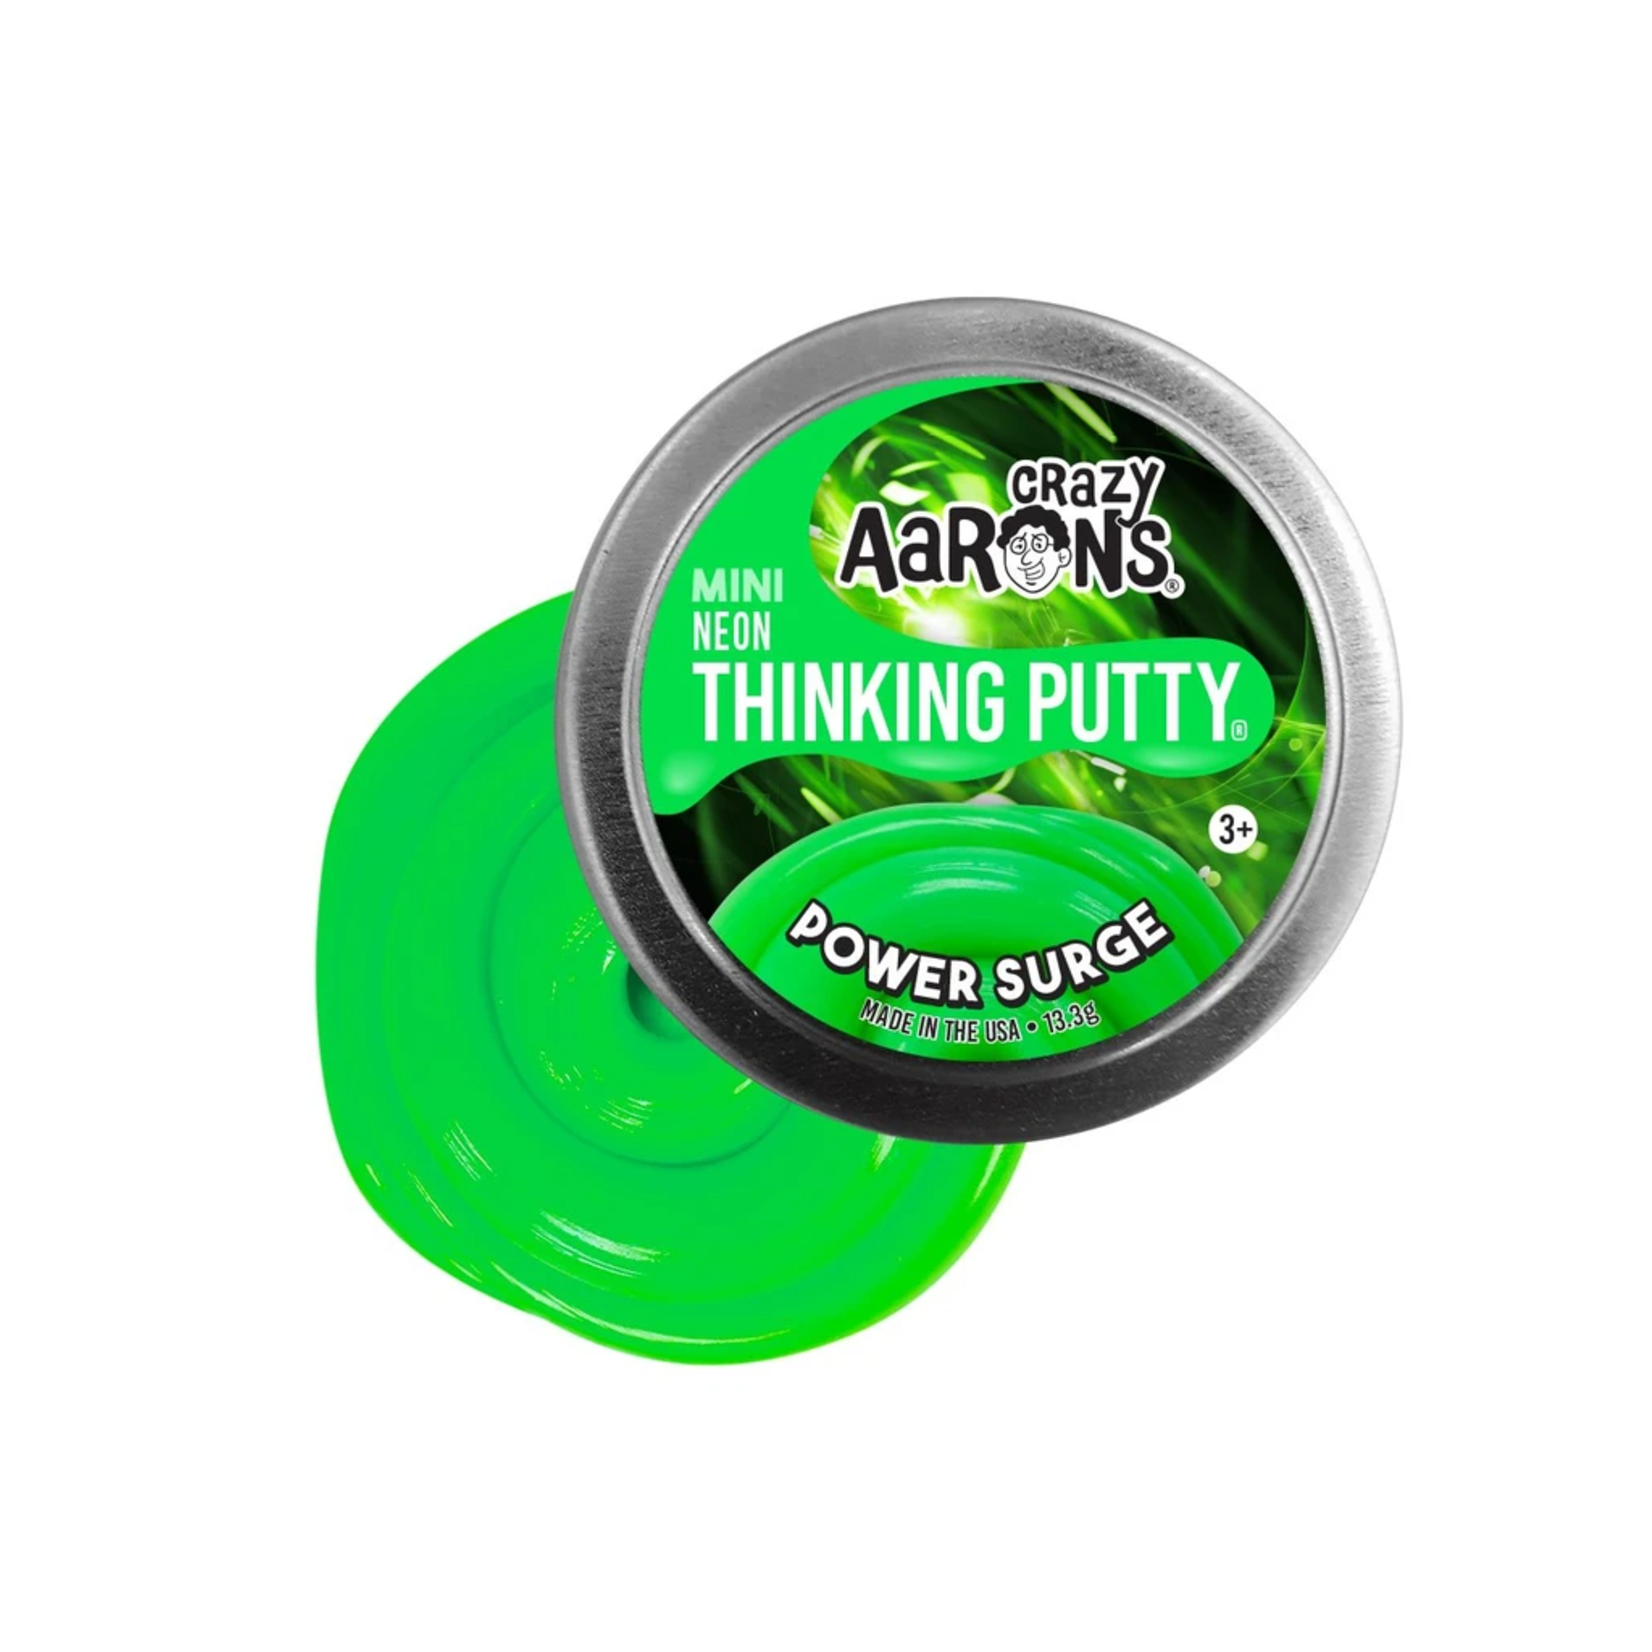 """Crazy Aarons Thinking Putty: Power Surge (2"""")"""